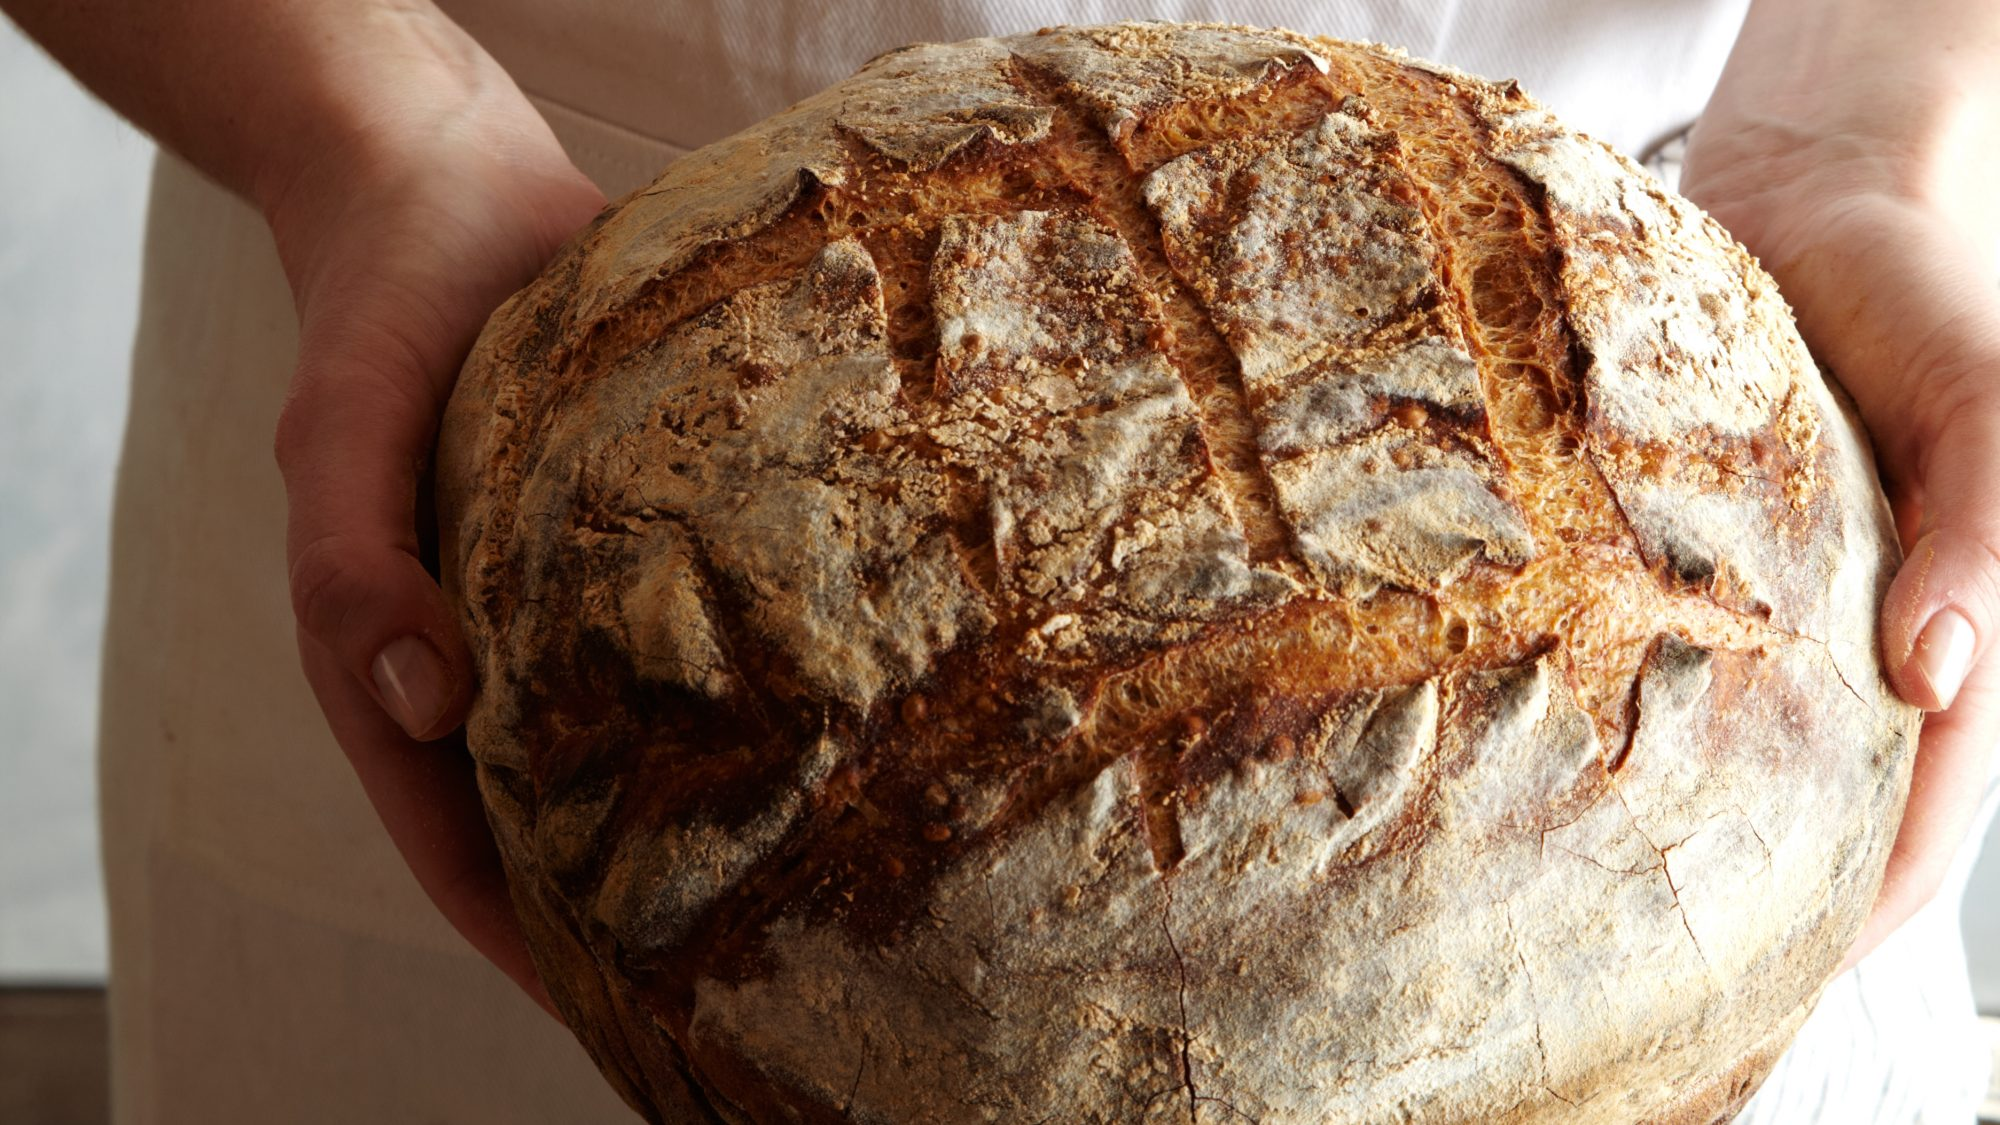 5 Ways to Use a Loaf of Sourdough Bread